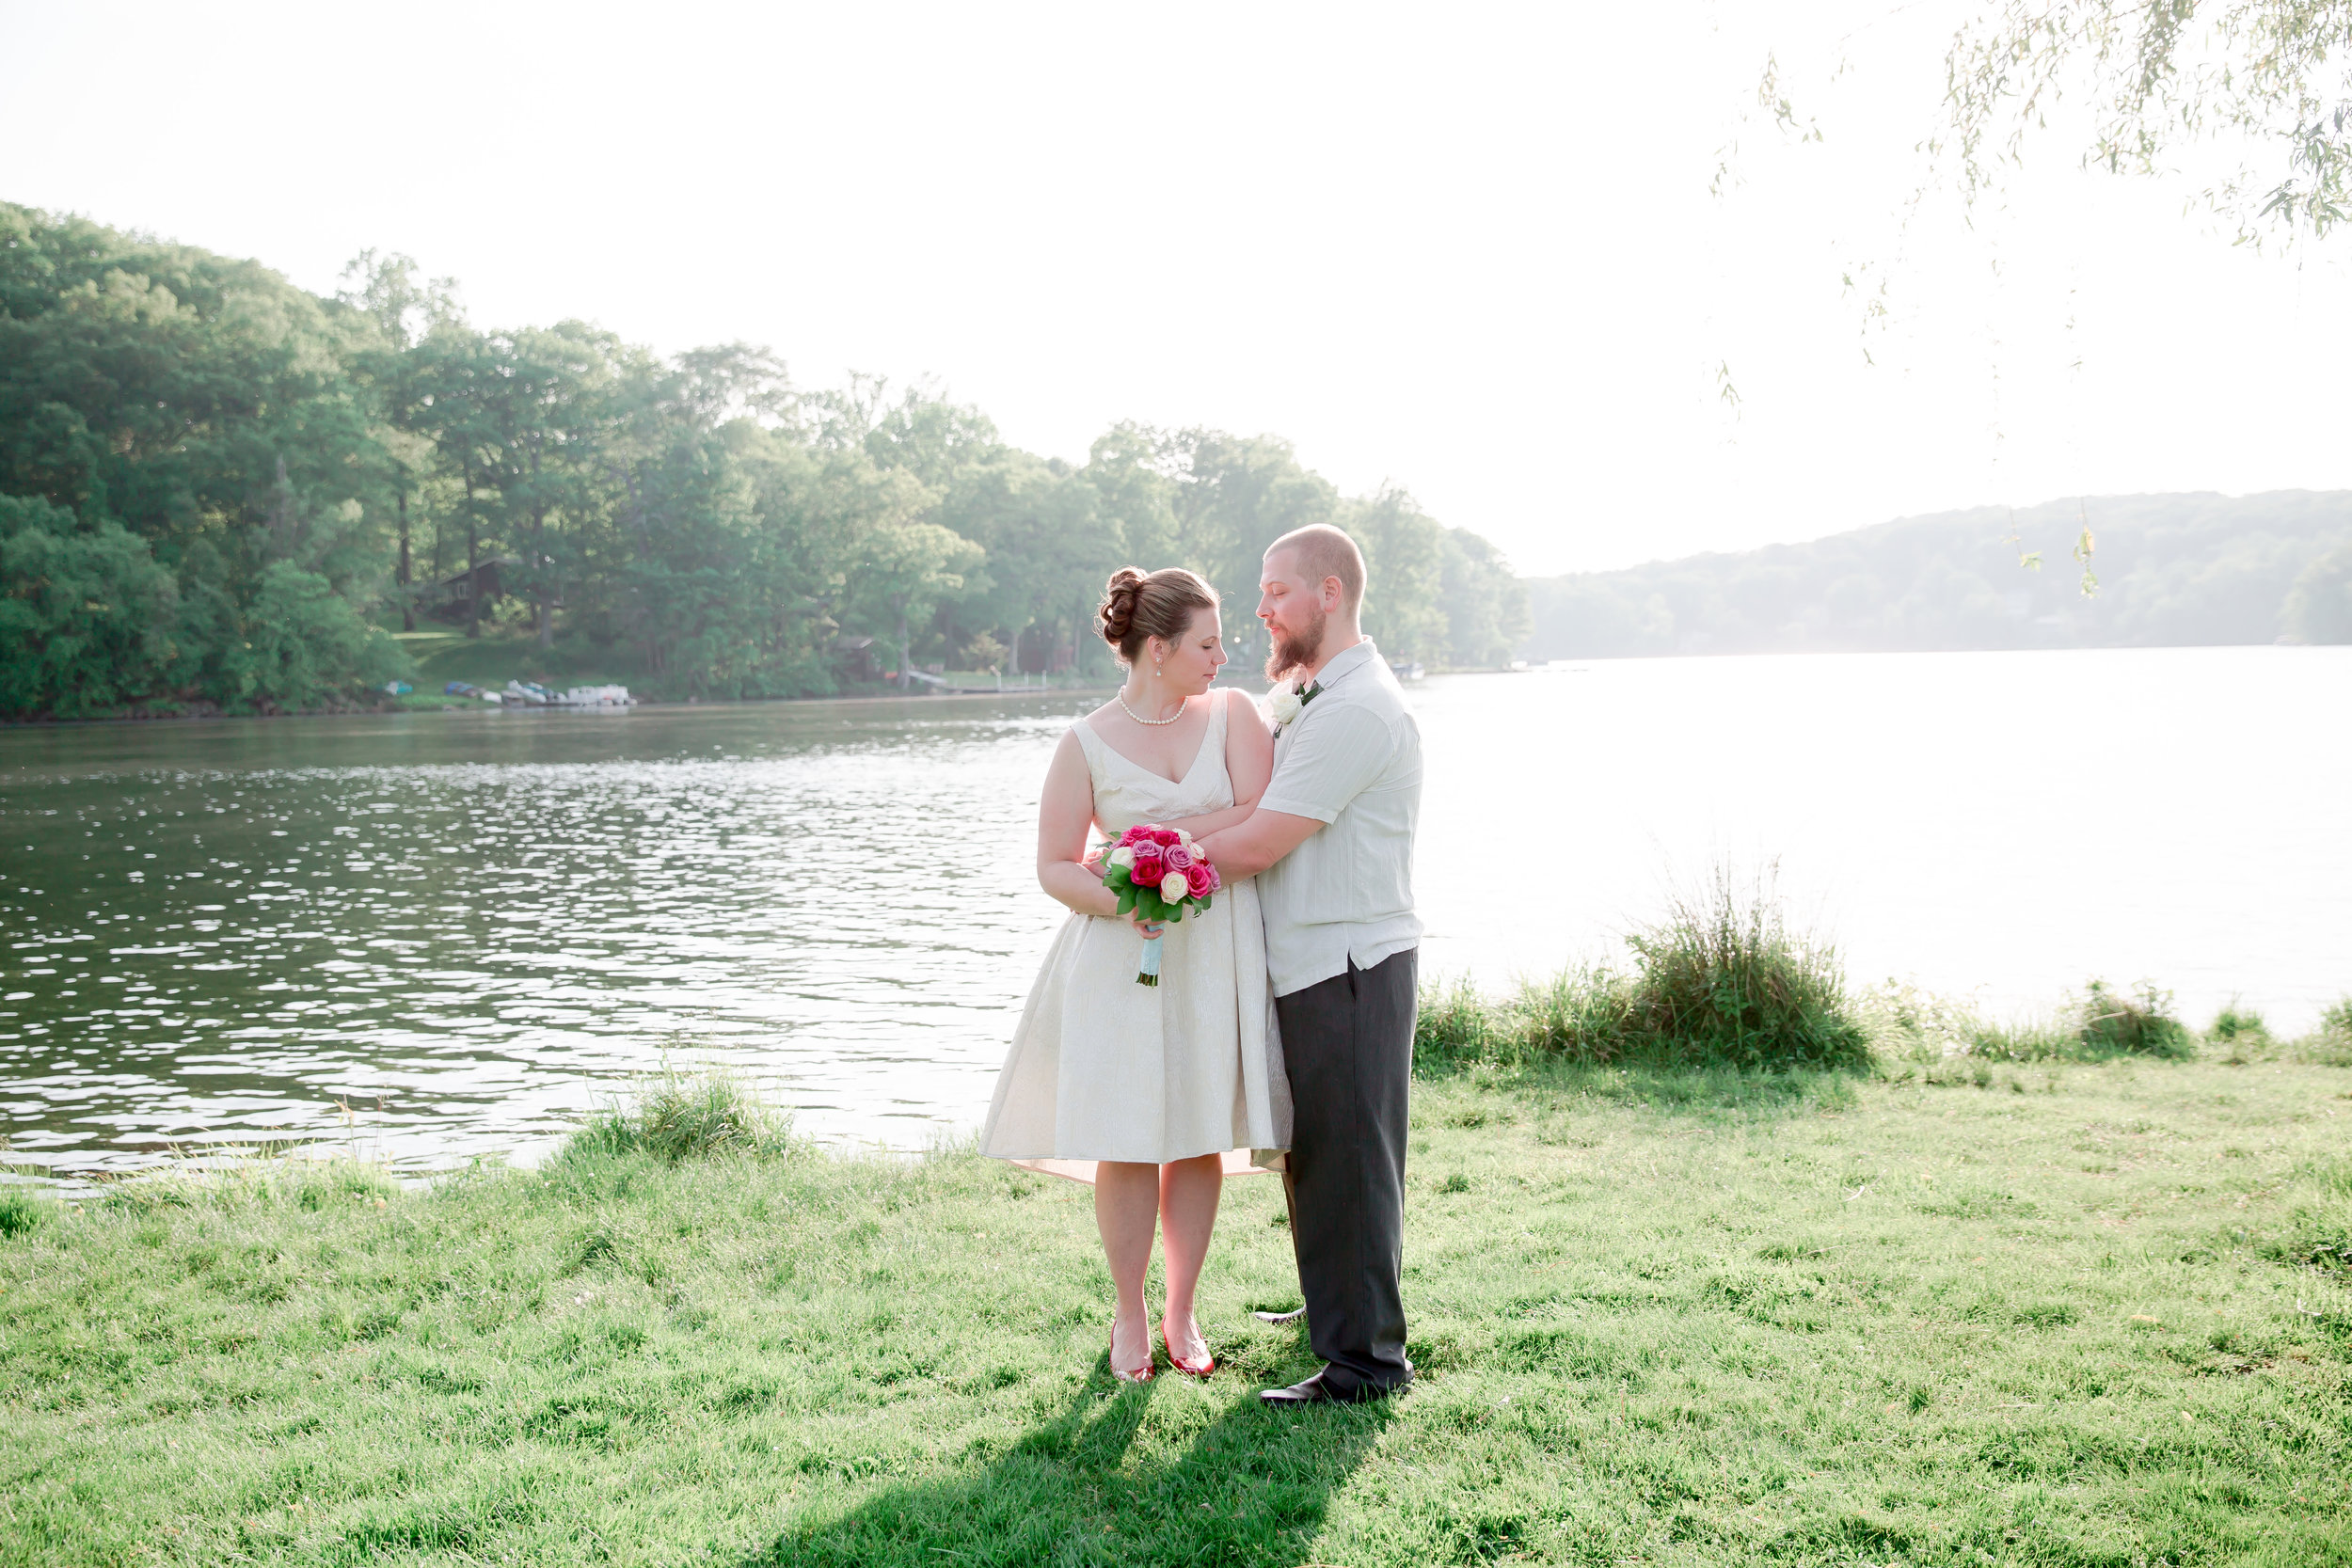 My sisters small intimate wedding was perfect!!! Lakeside with her love :)